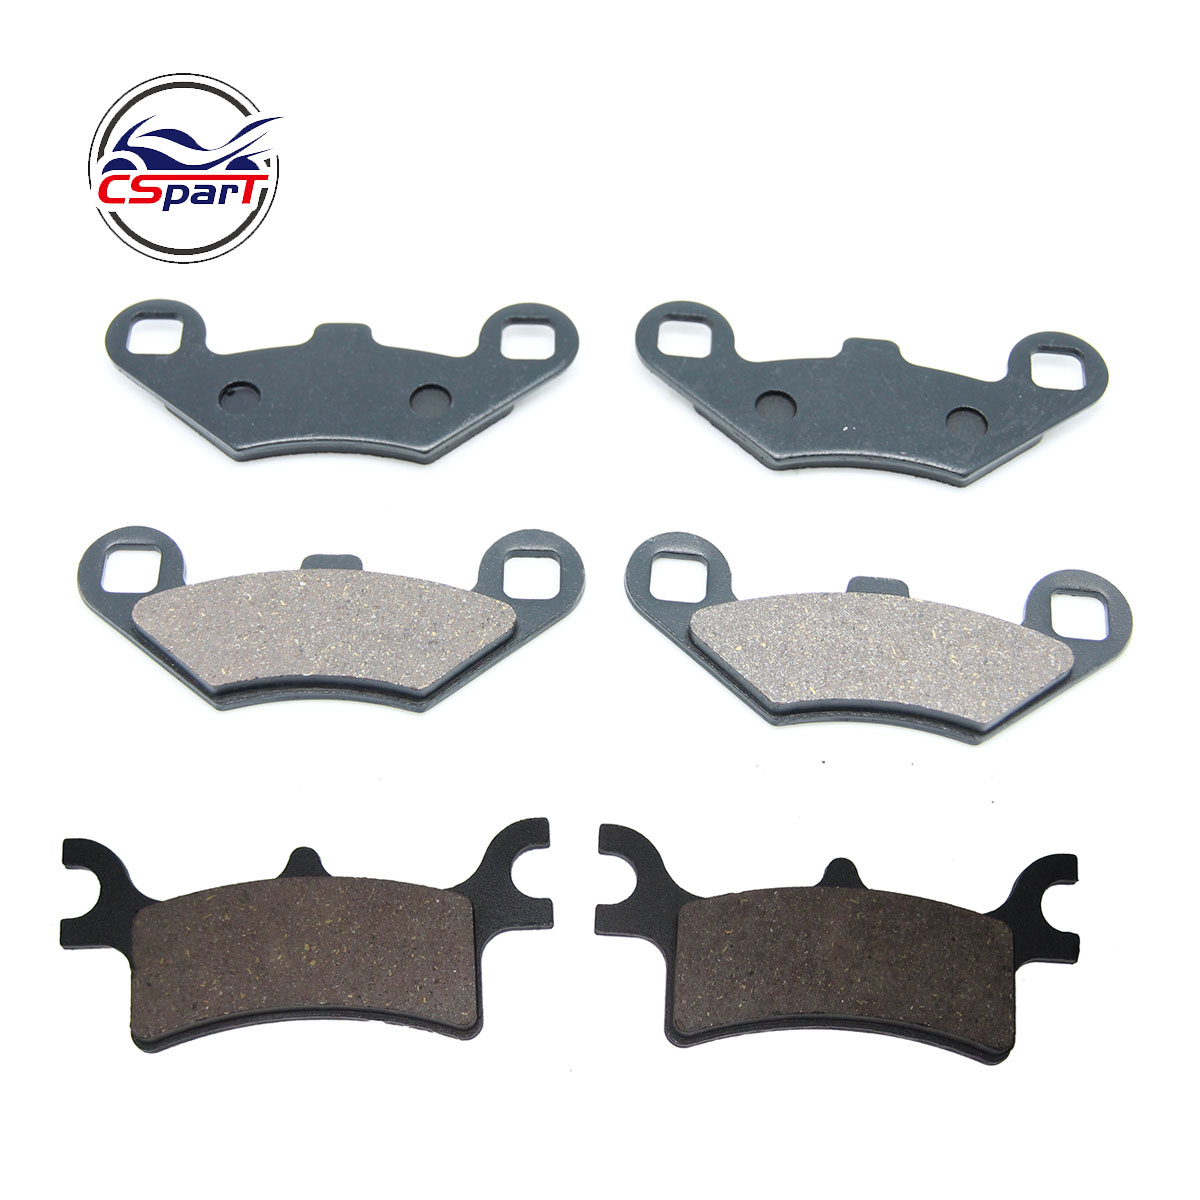 3 Pairs Front Rear Brake Pads For Polaris Sportsman 400 500 700 800 EFI 2003 2004 2005 2006 2007 2008